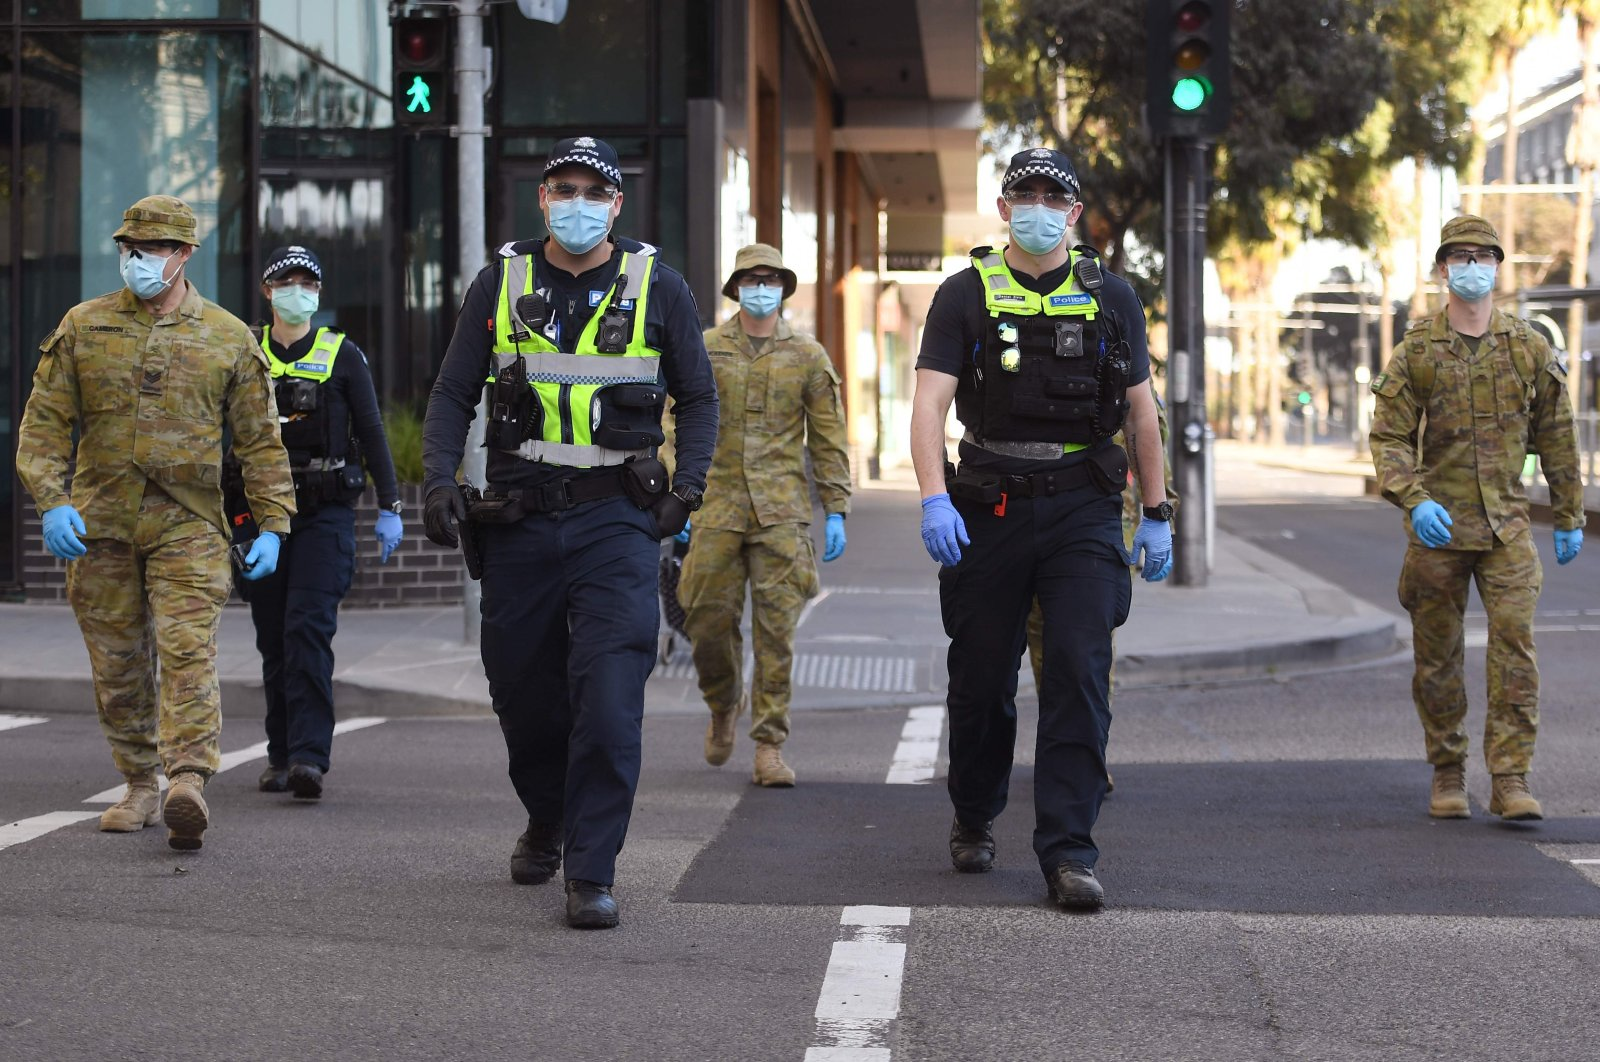 A group of police and soldiers patrol the Docklands area of Melbourne on August 2, 2020, after the announcement of new restrictions to curb the spread of the COVID-19 coronavirus. (AFP Photo)